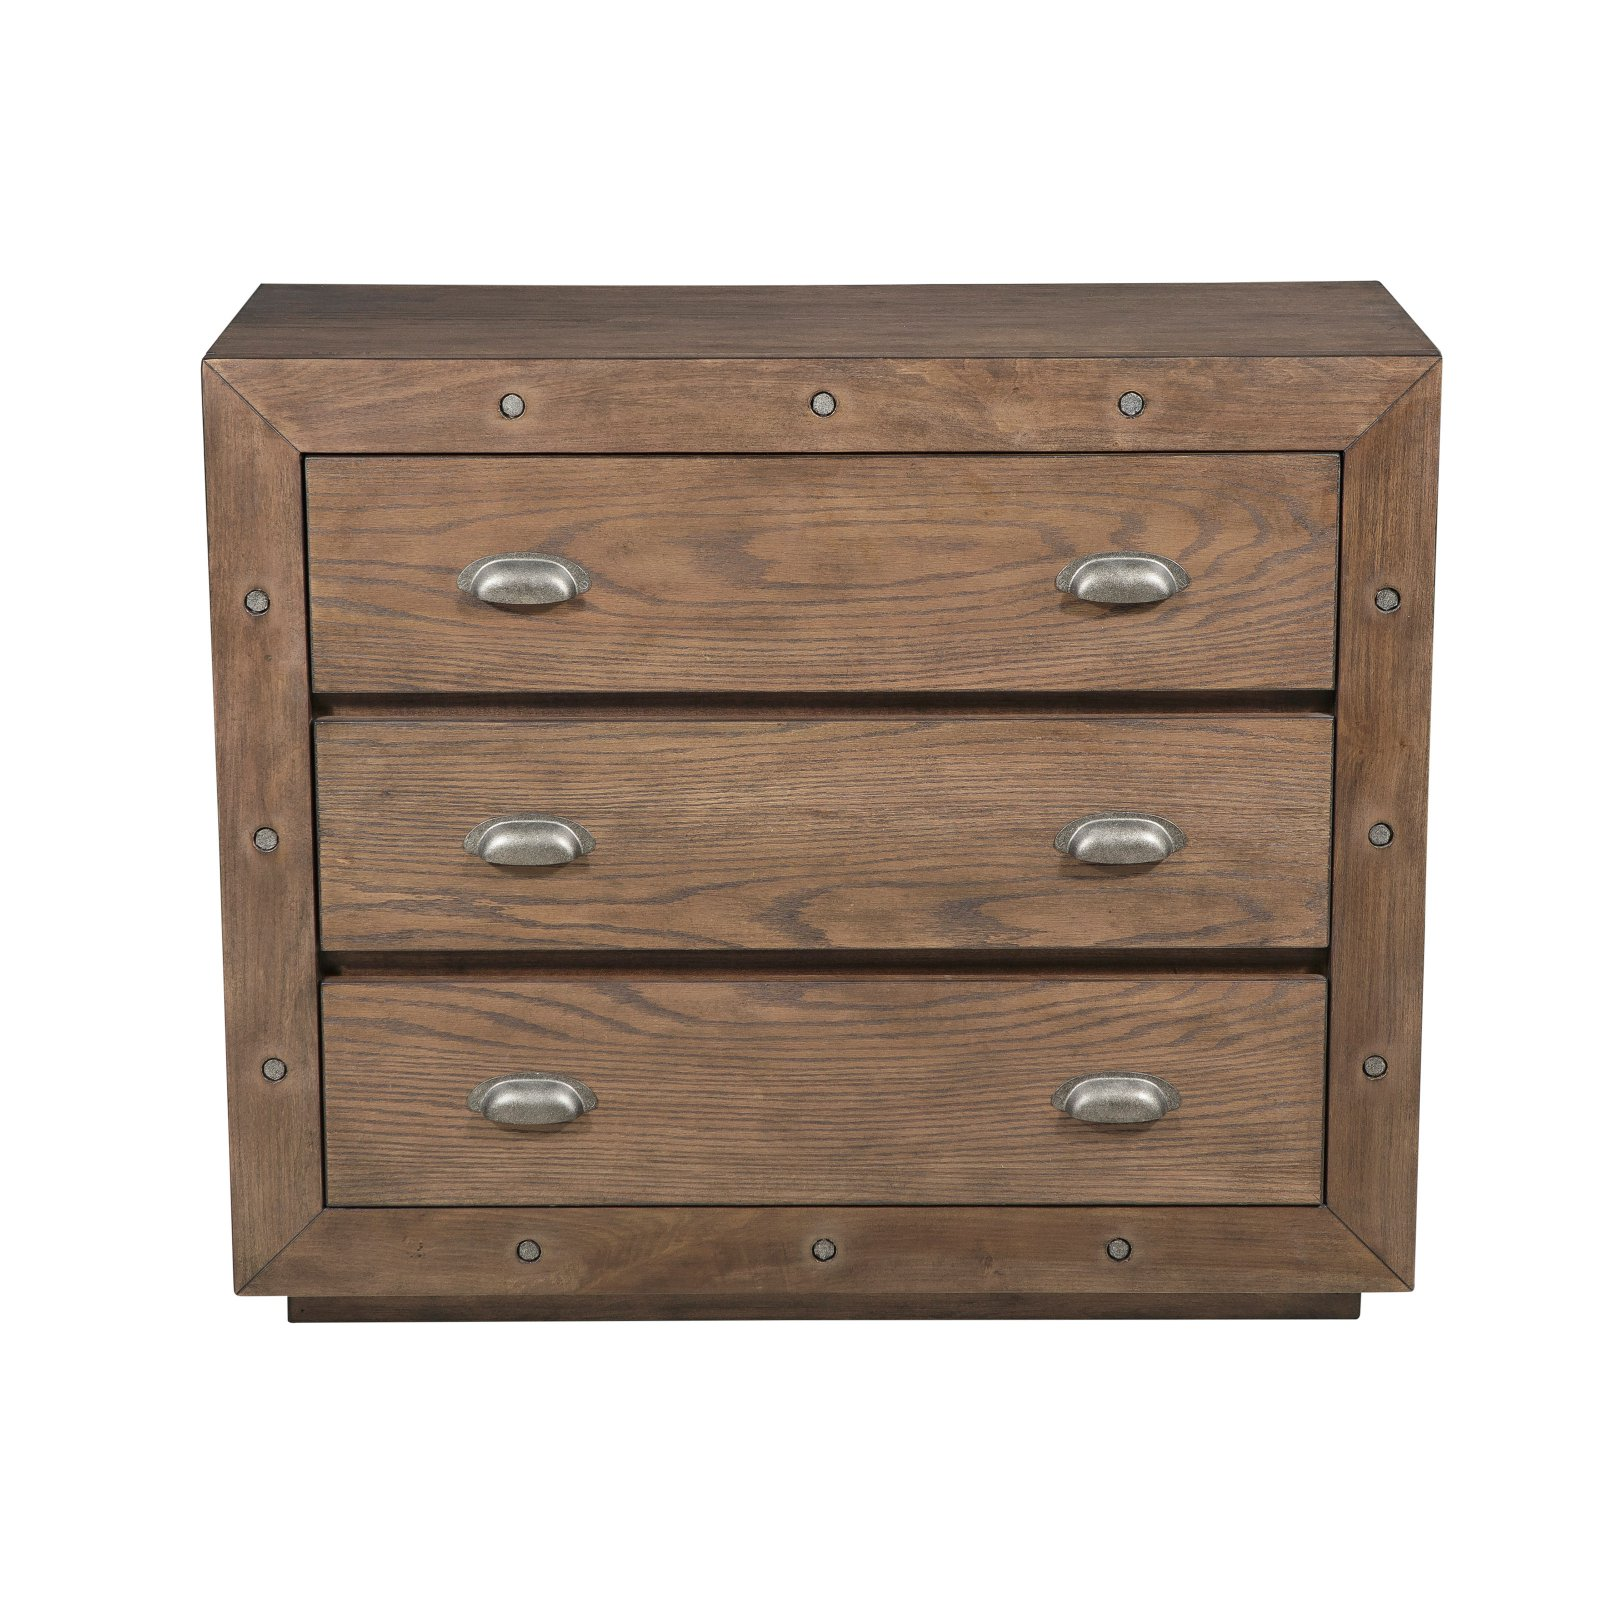 Farm House Style Accent Chest with Industrial Elements